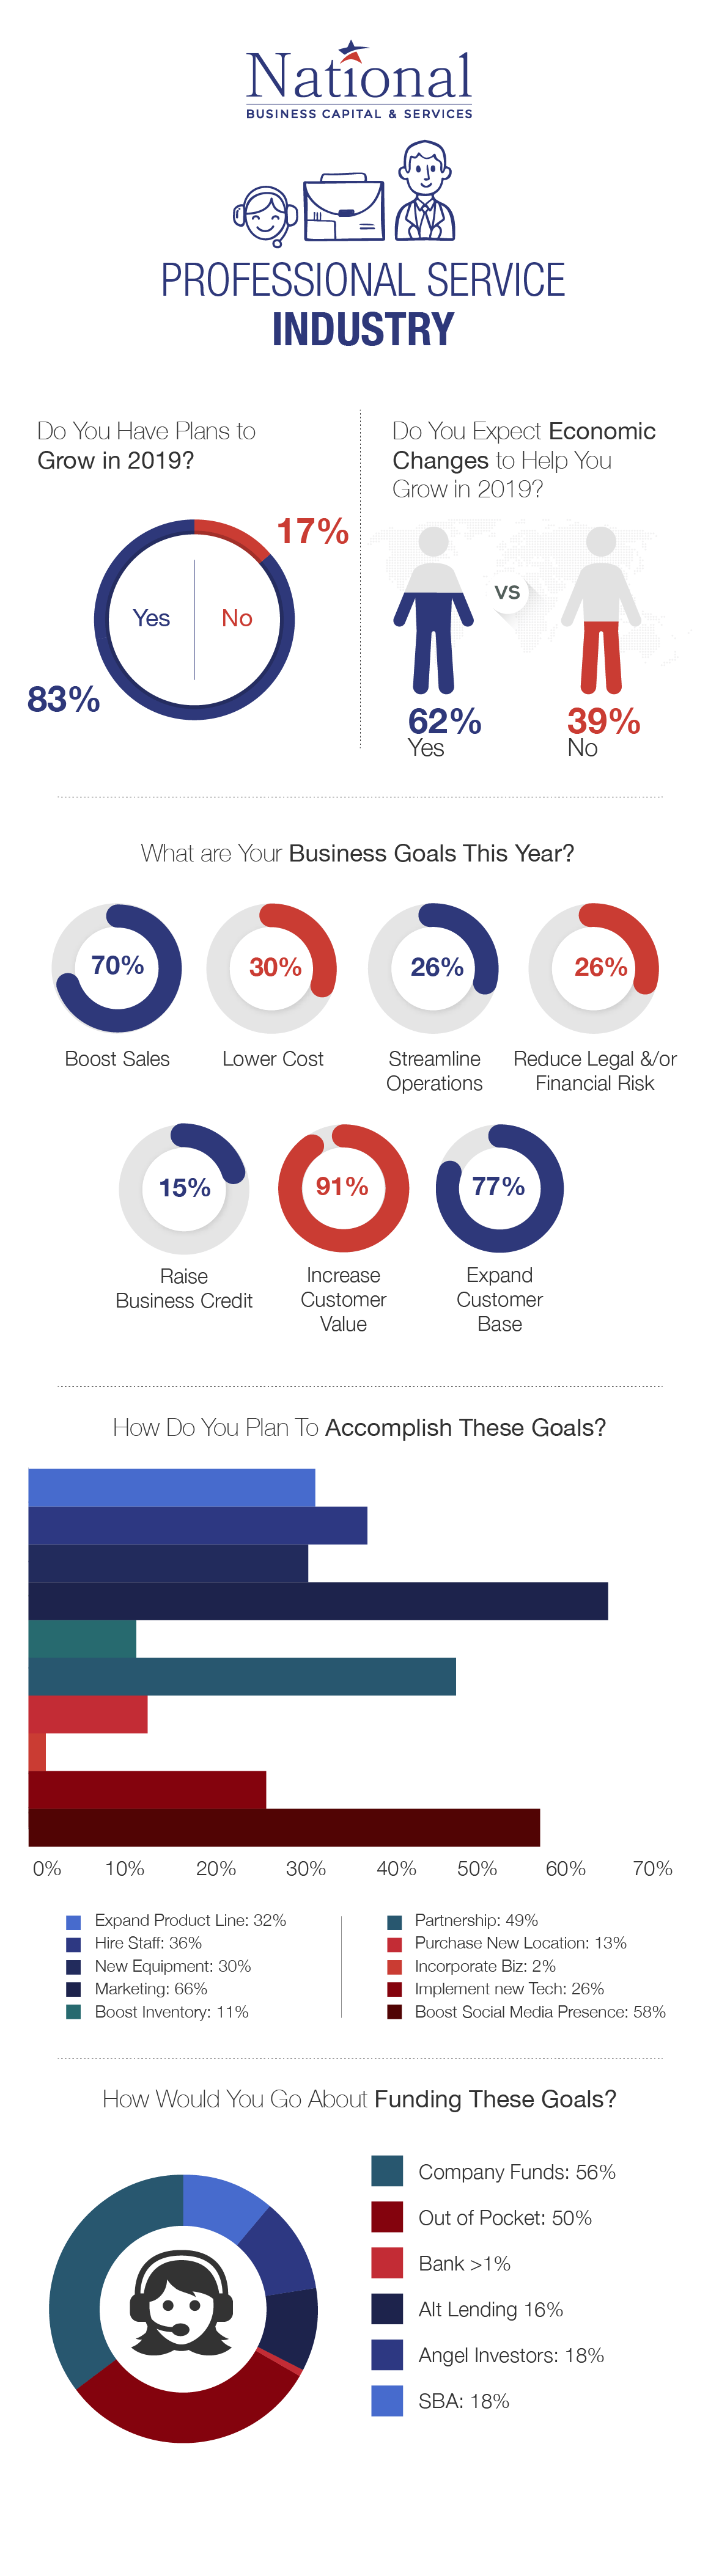 professional services industry business confidence survey results infographic